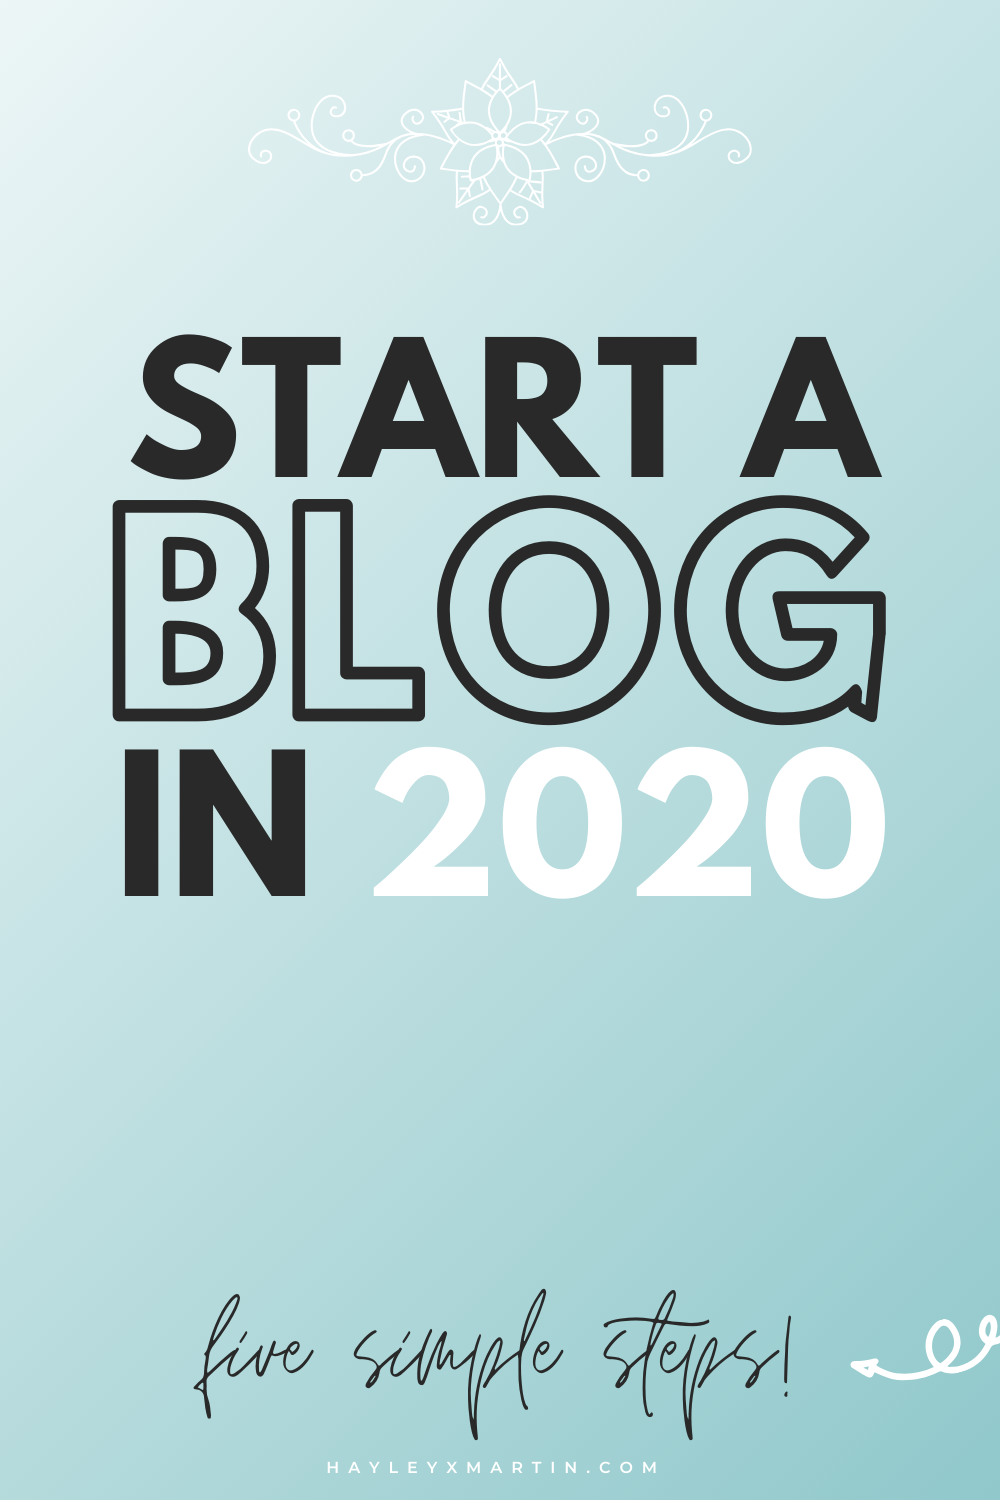 Start a blog in 2020 - five simple steps - hayleyxmartin.com